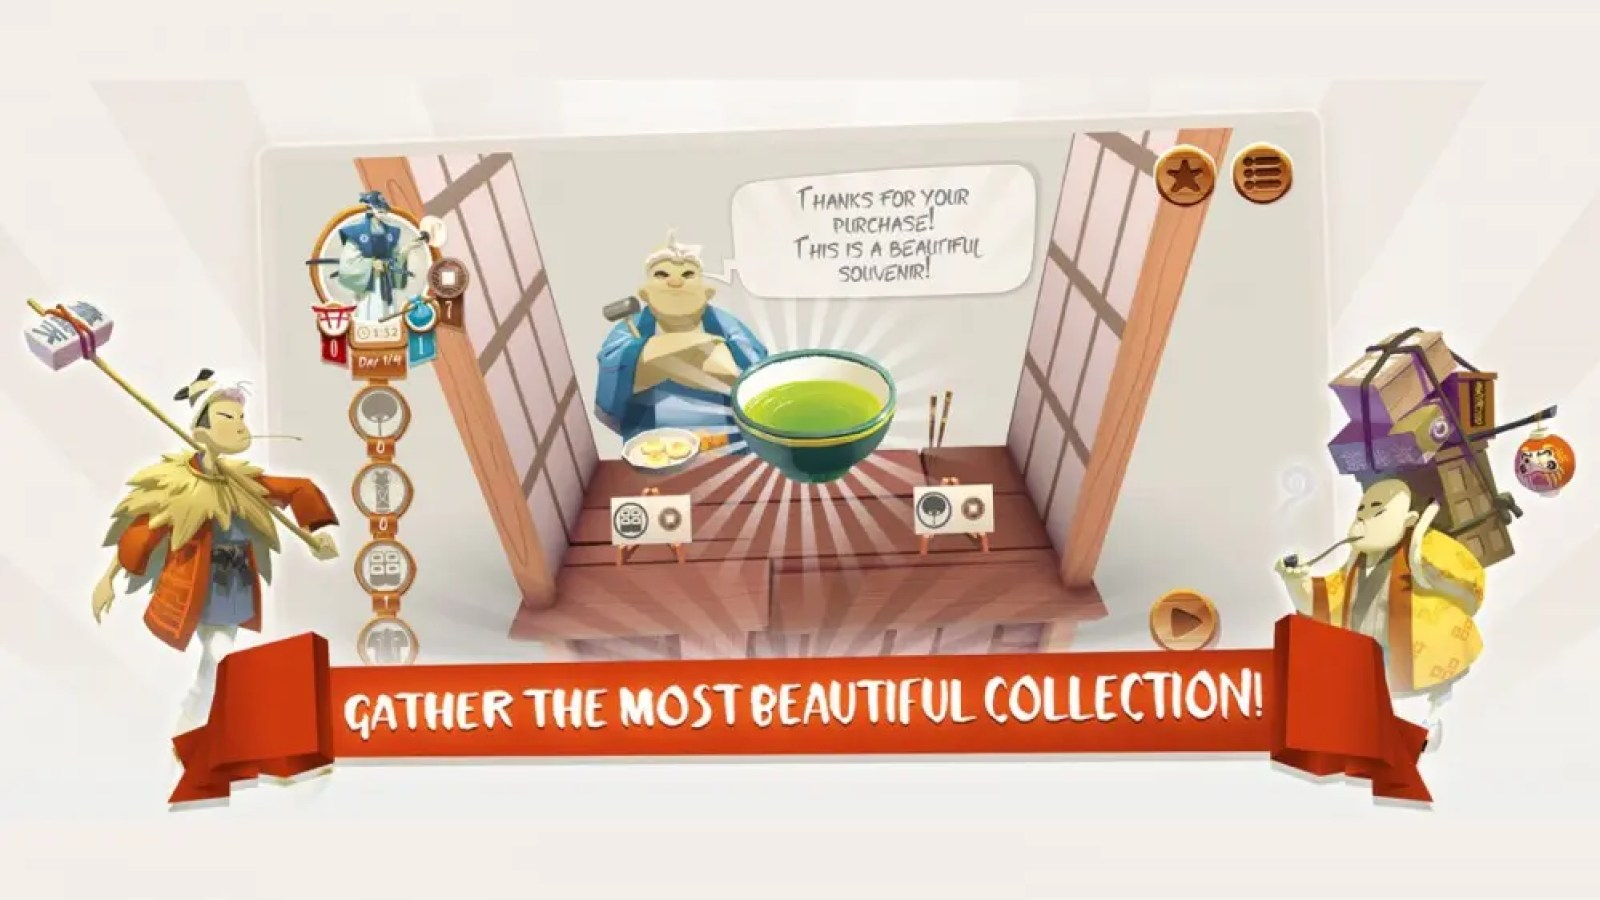 You'll gather a collection of artifacts and artwork during Tokaido